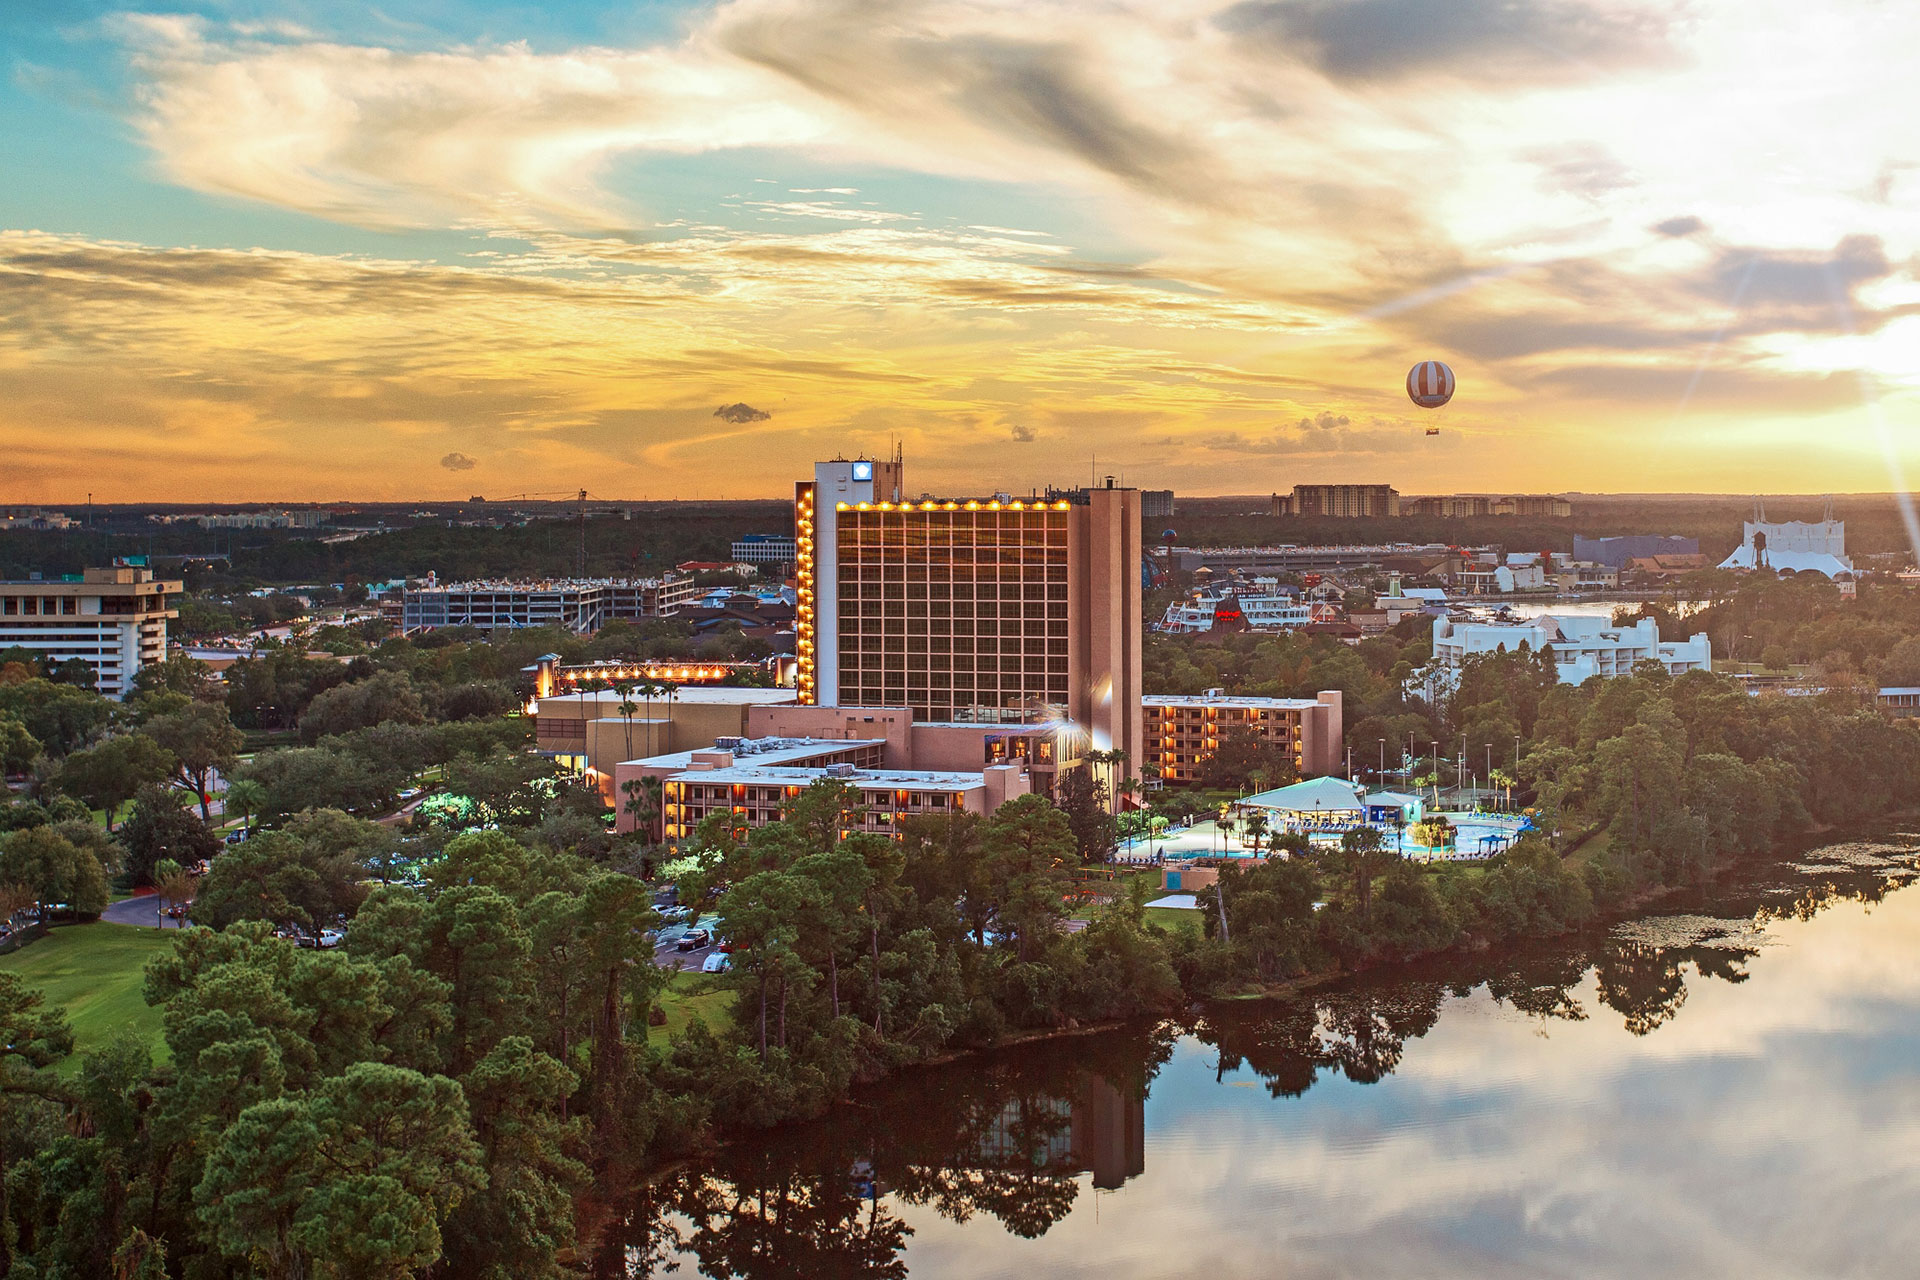 Aerial View of Wyndham Lake Buena Vista Disney Springs Resort Area; Courtesy of Wyndham Lake Buena Vista Disney Springs Resort Area